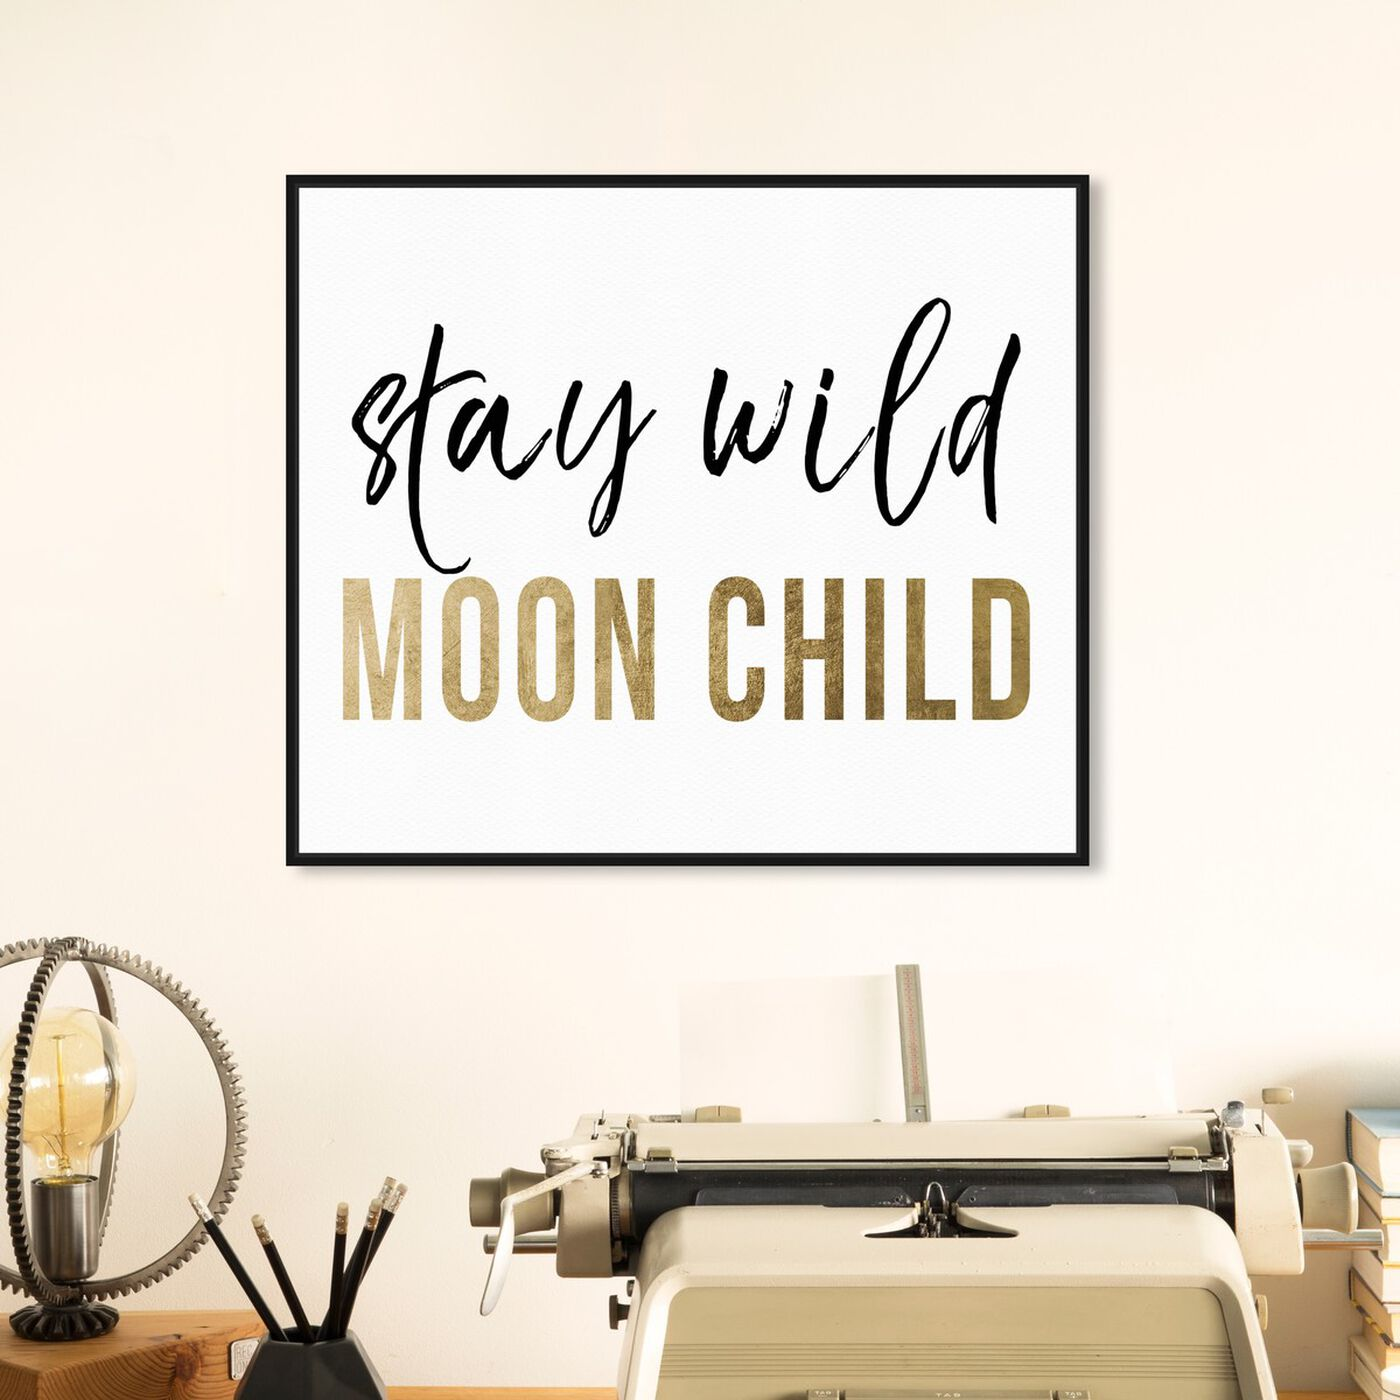 Hanging view of Stay Wild Moon Child featuring typography and quotes and motivational quotes and sayings art.